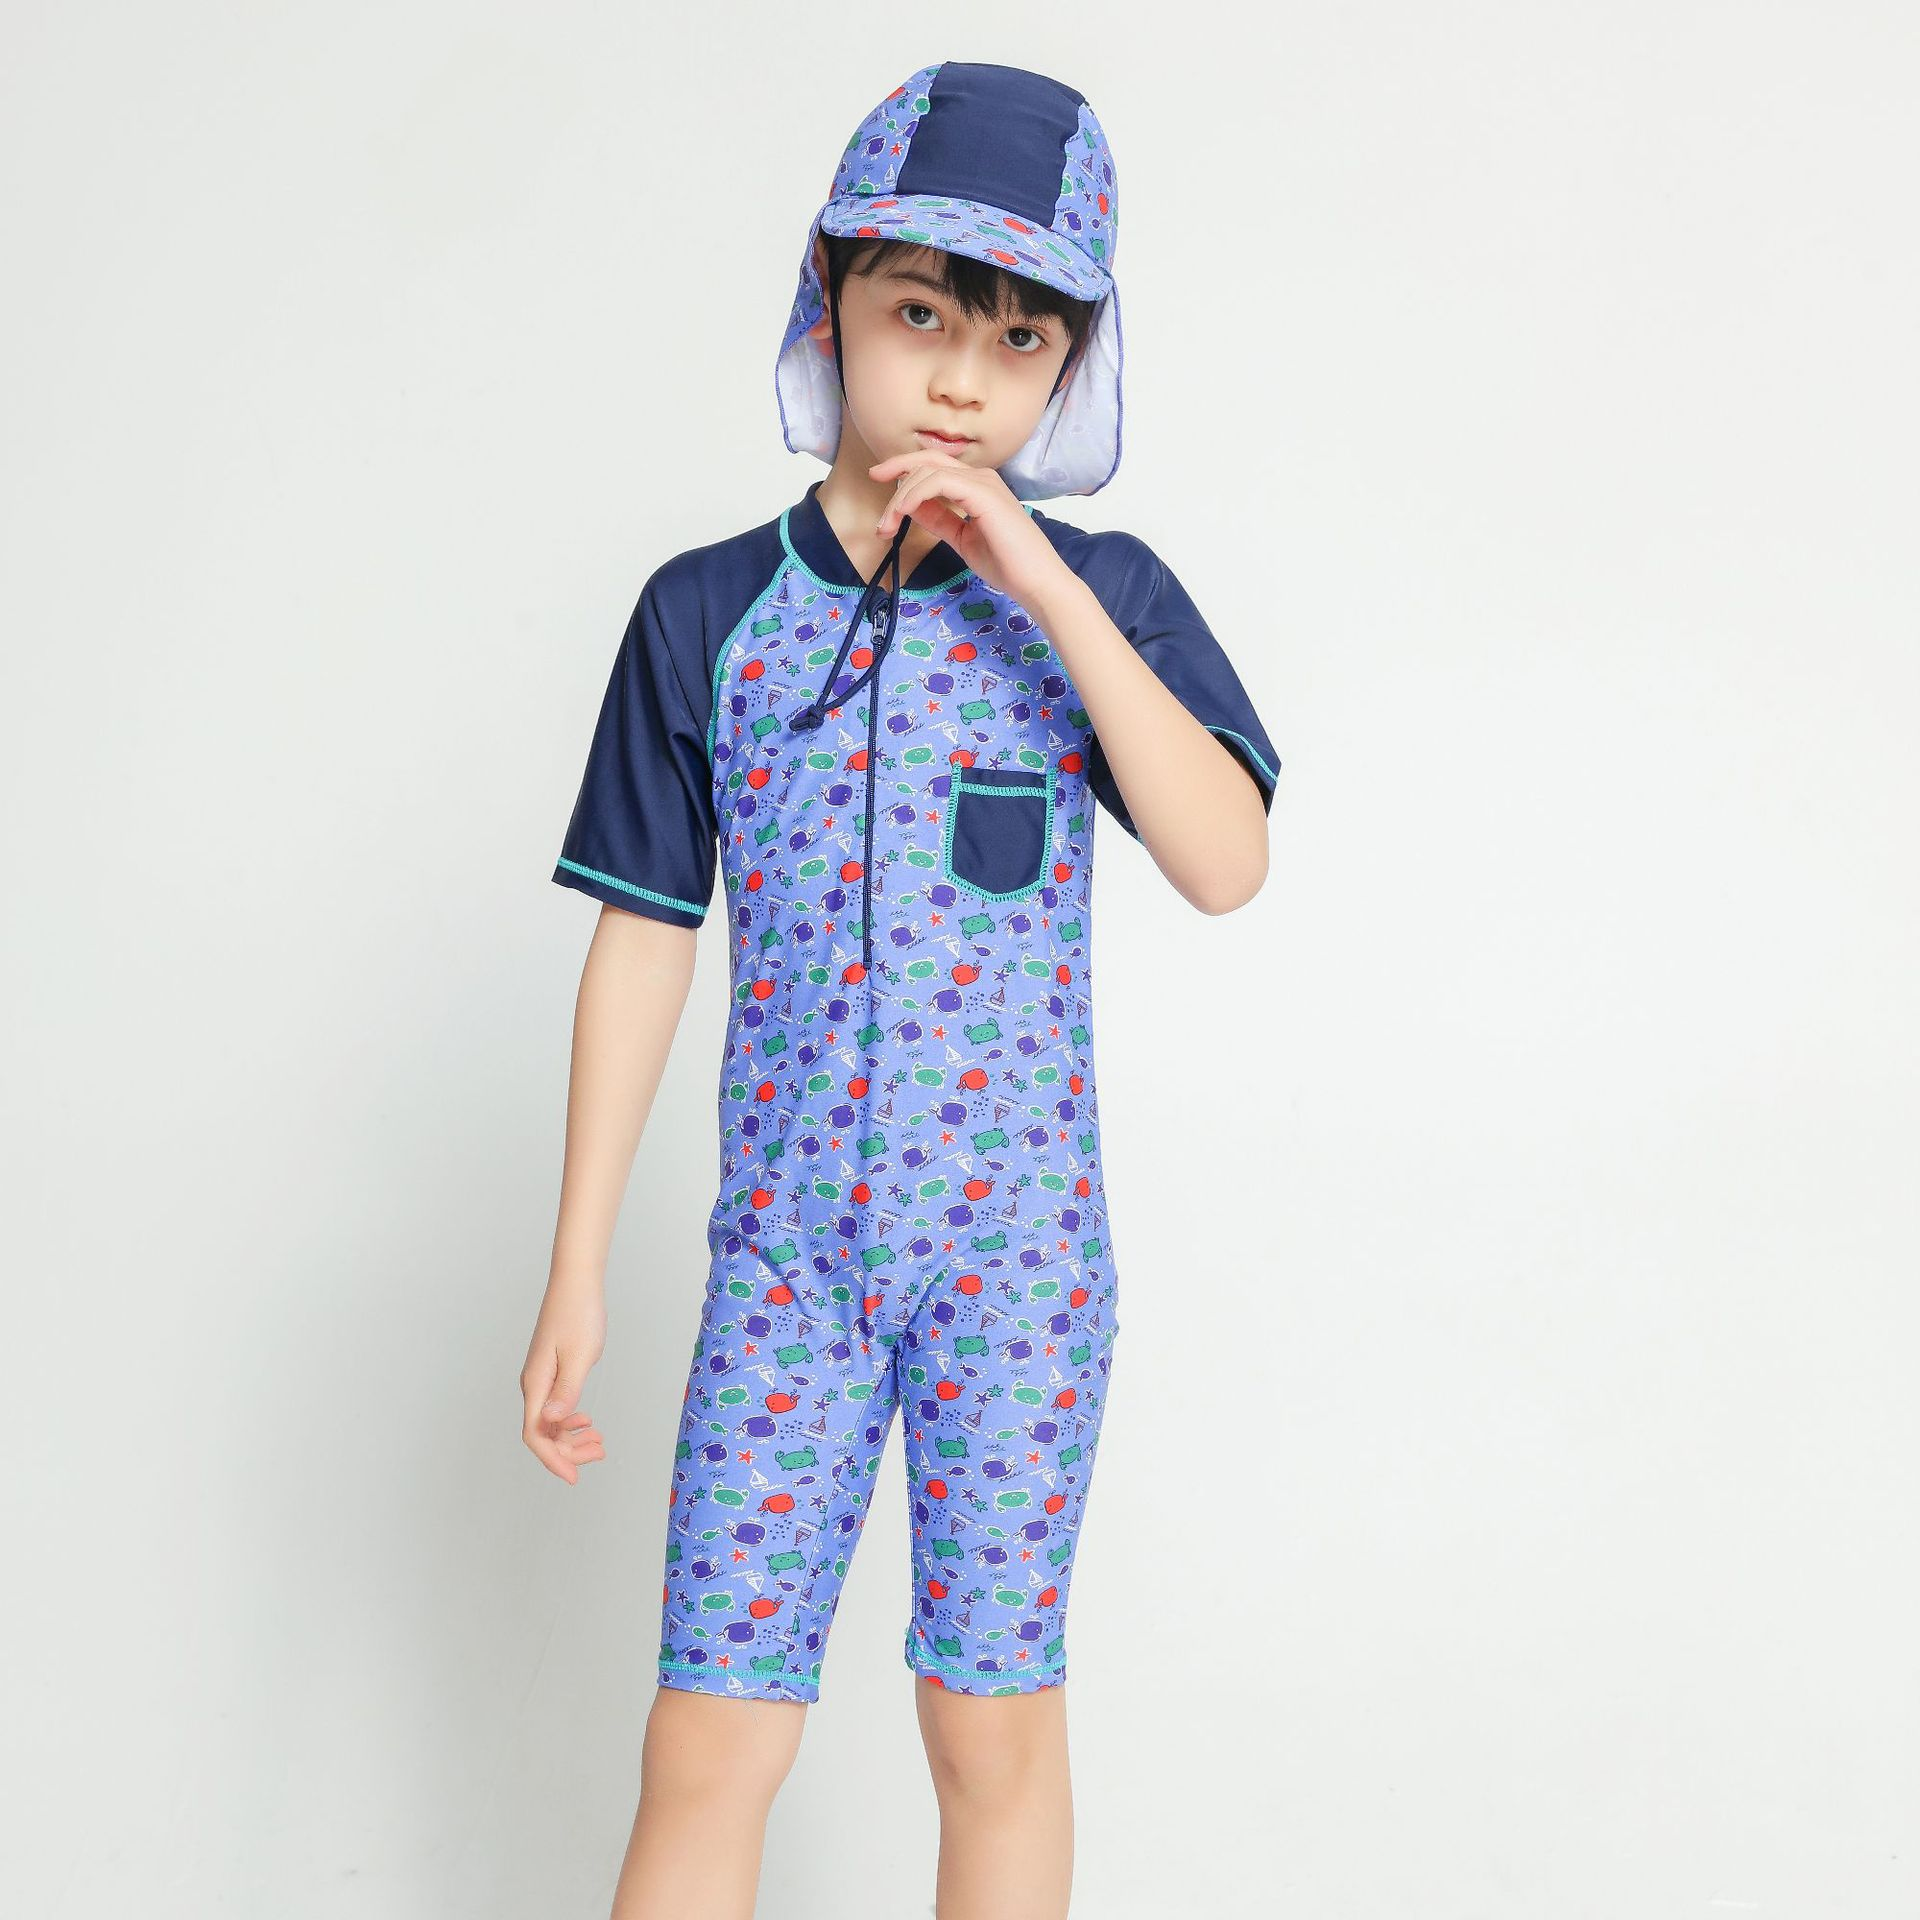 Water Sports Anti-UV BOY'S Jin Urethane Elastic Fibre Short Sleeve One-piece Shorts Bathing Suit With Sun Protection Hat 4-10-Ye